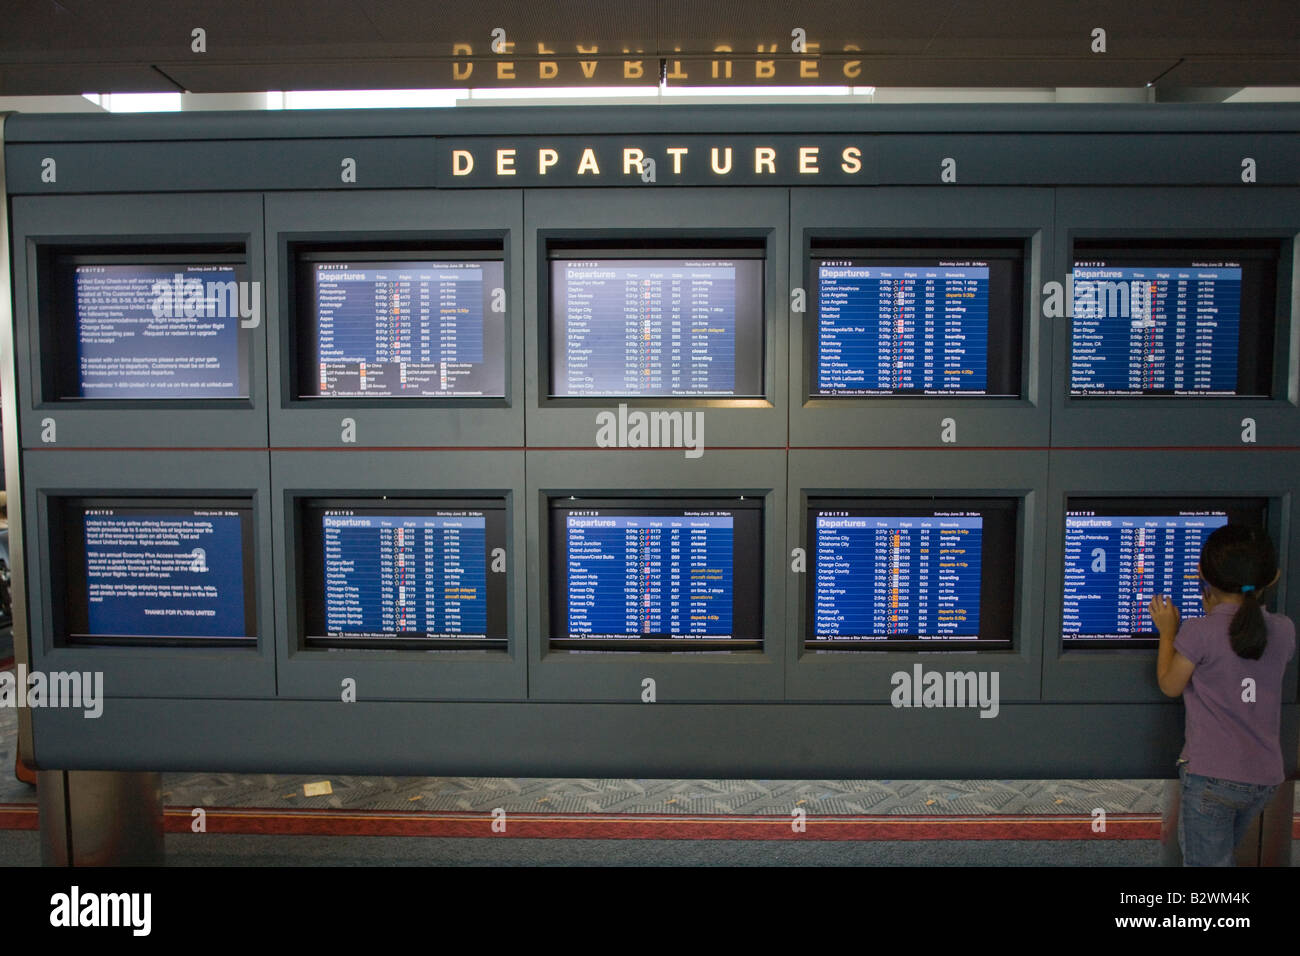 girl looking at flight schedule video terminals, Denver International Airport, Colorado, USA - Stock Image